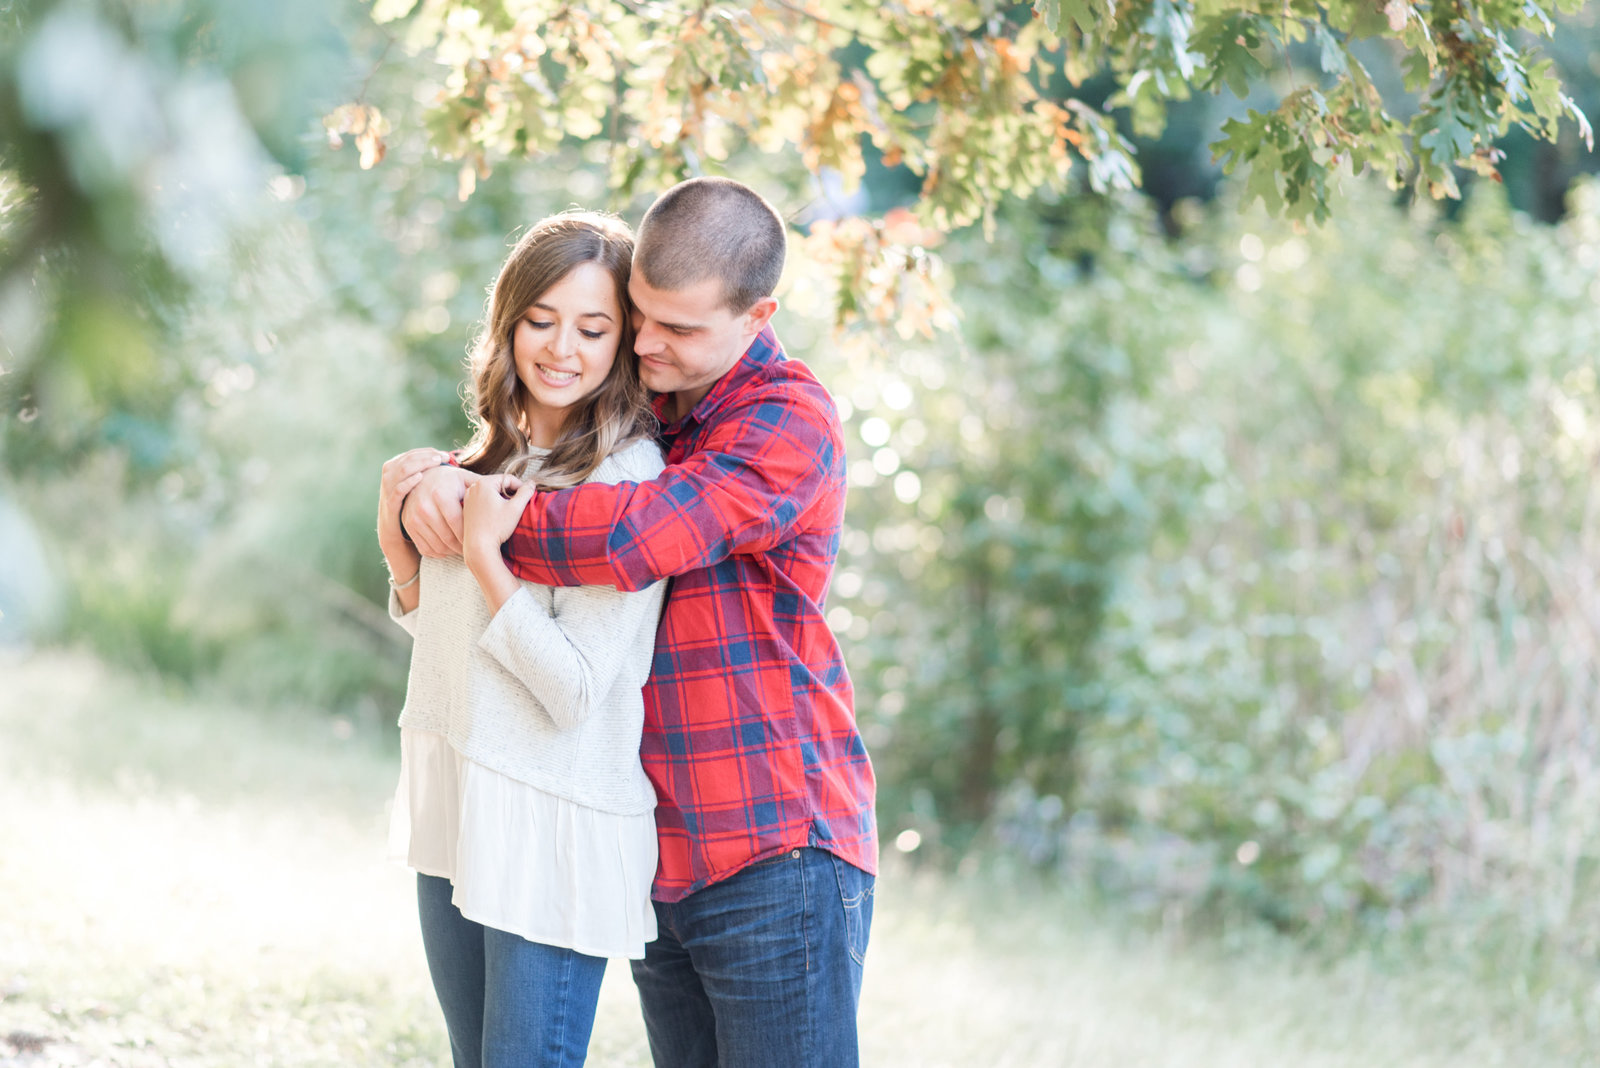 va beach park fall foliage golden light engagement photo by hampton roads photographer